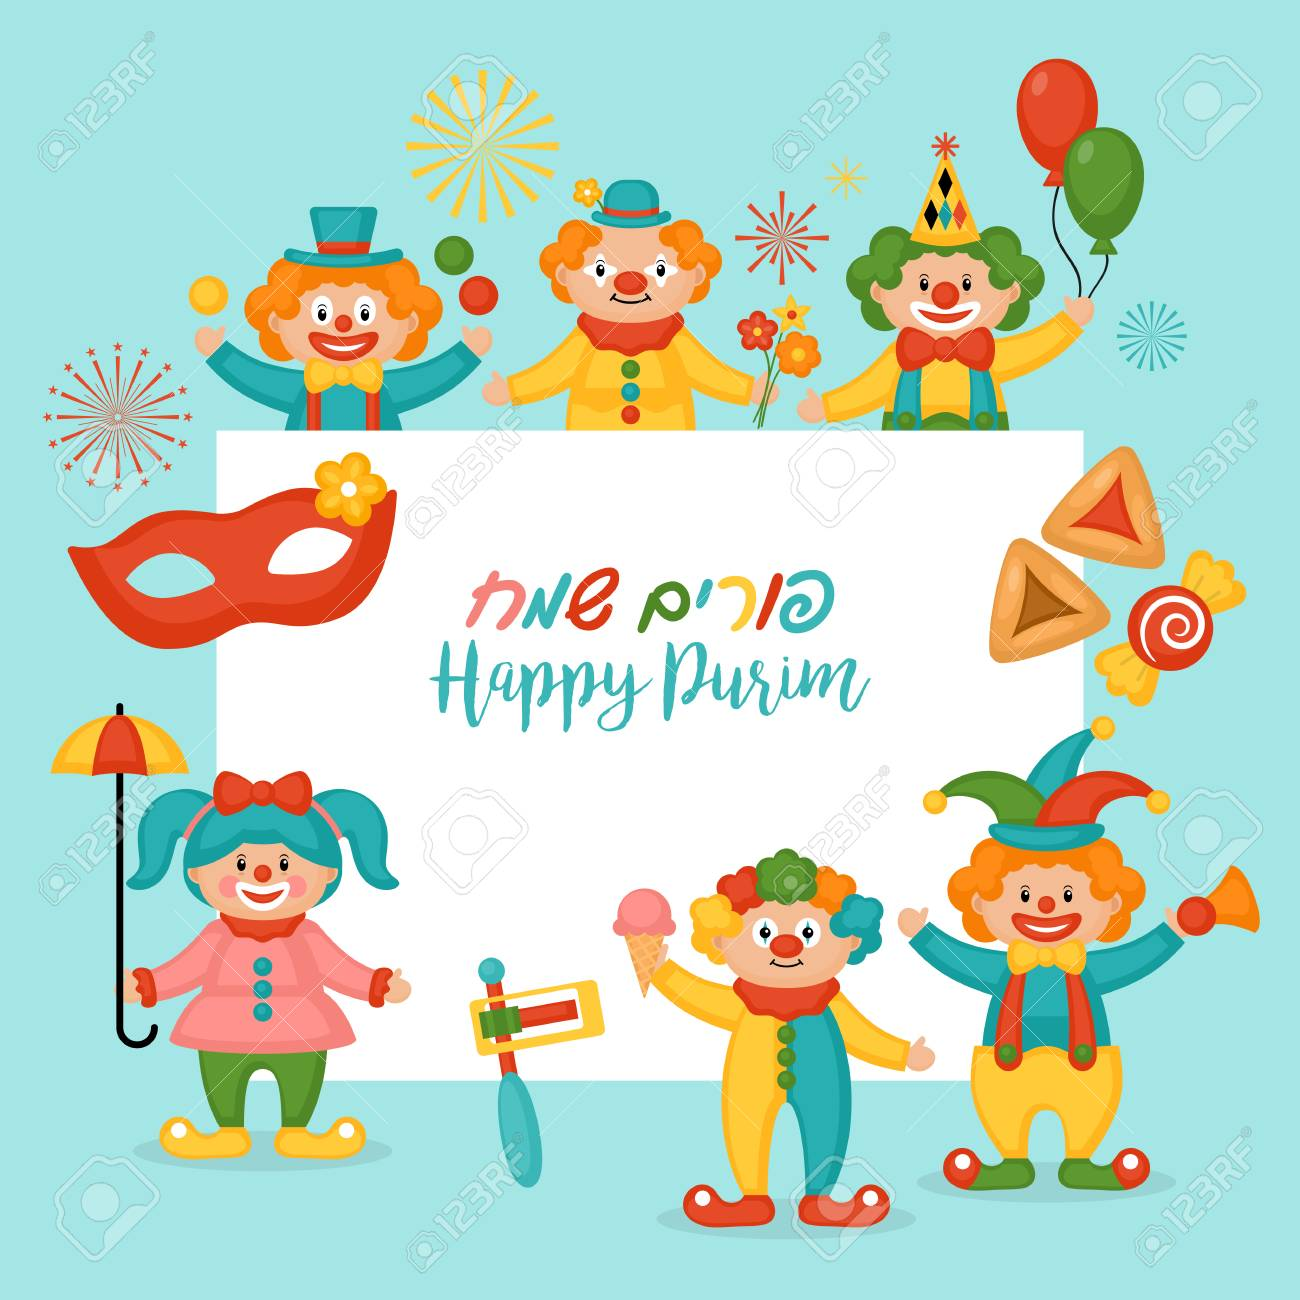 purim holiday banner design with cute clown characters vector